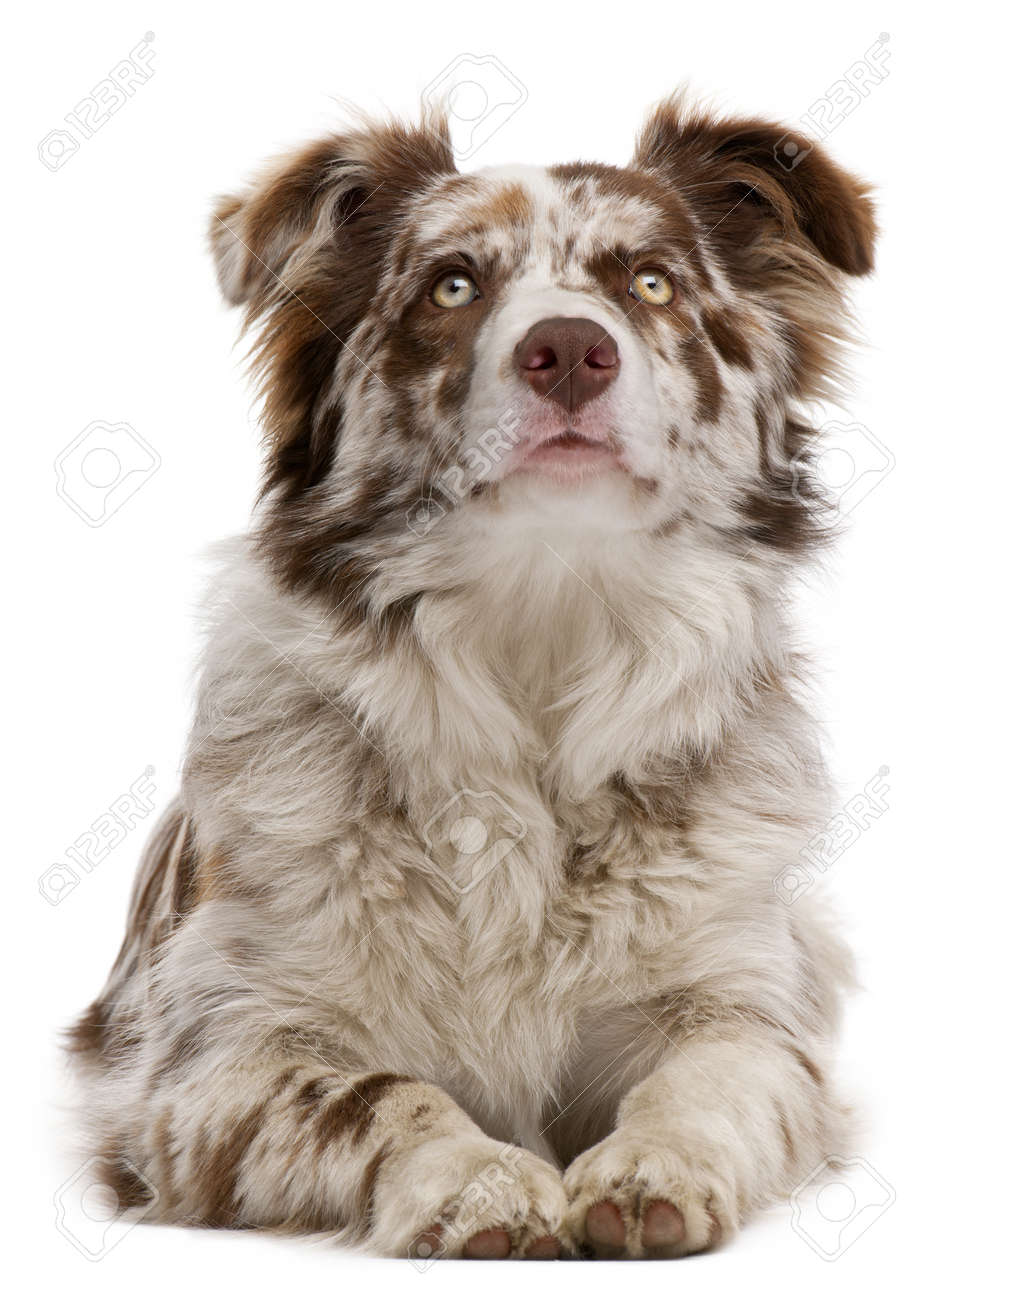 Red Merle Border Collie 6 Months Old Lying In Front Of White